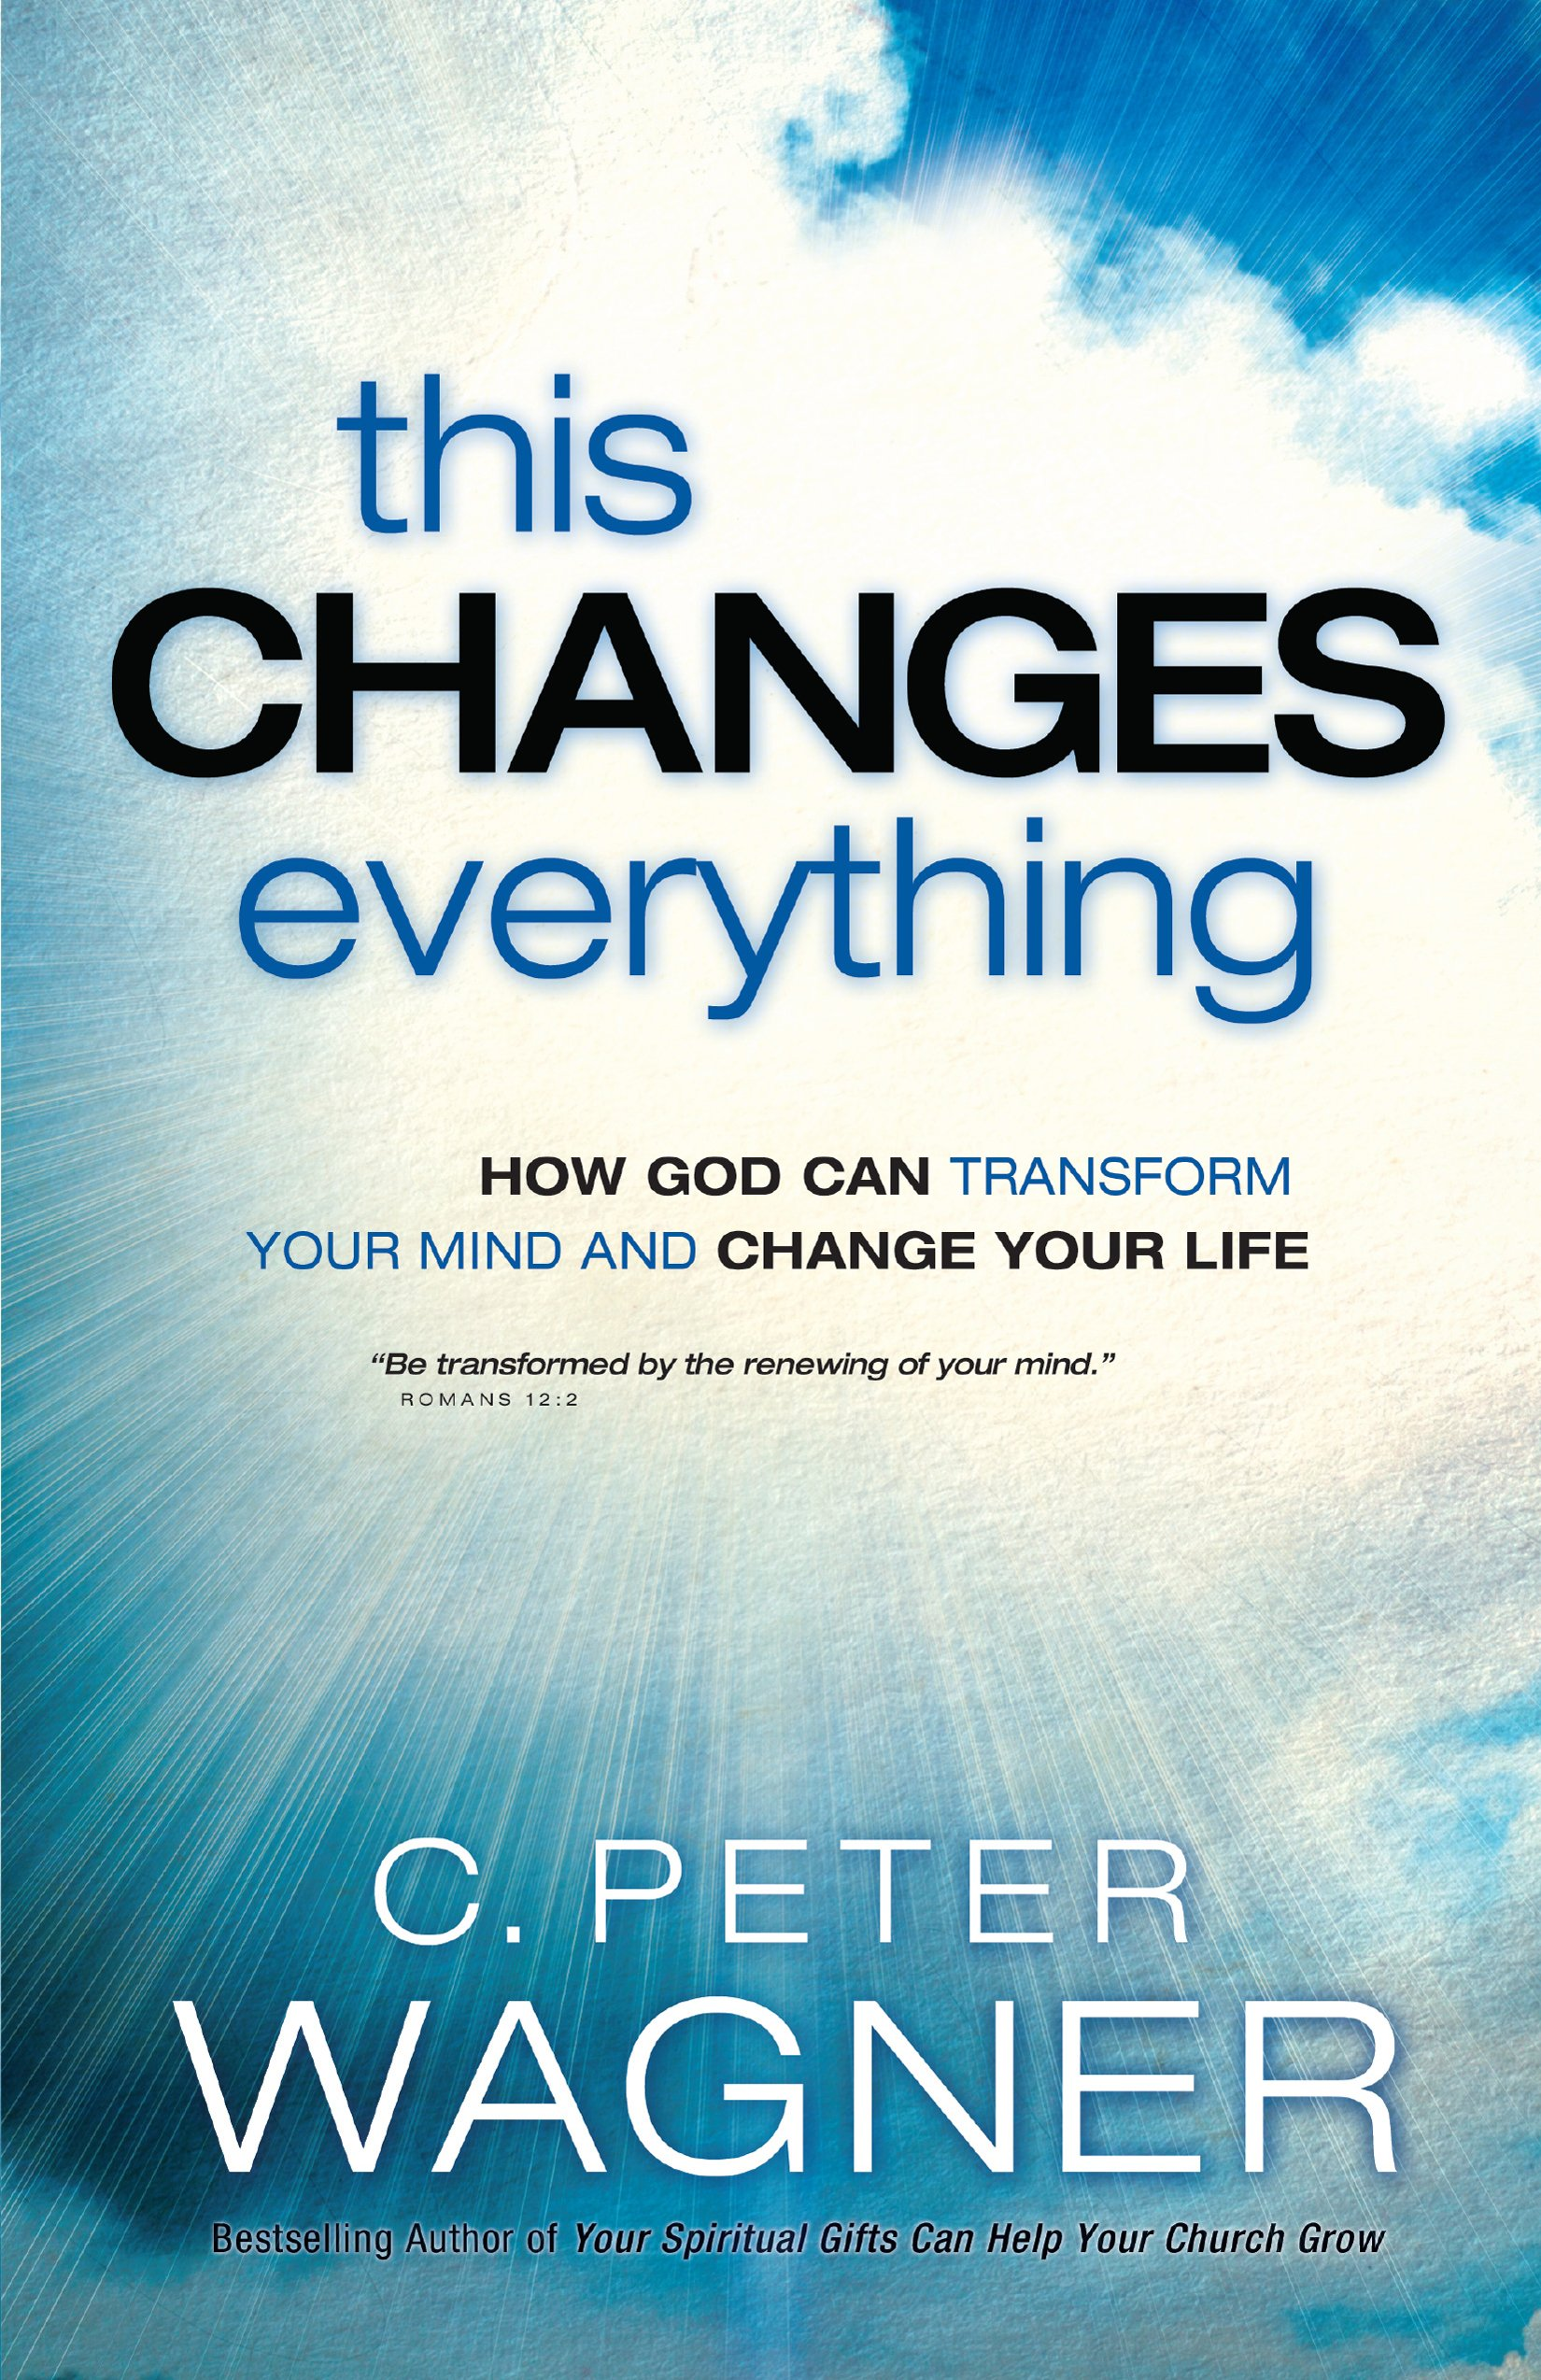 This changes everything how god can transform your mind and change this changes everything how god can transform your mind and change your life c peter wagner 9780800797447 amazon books fandeluxe Choice Image